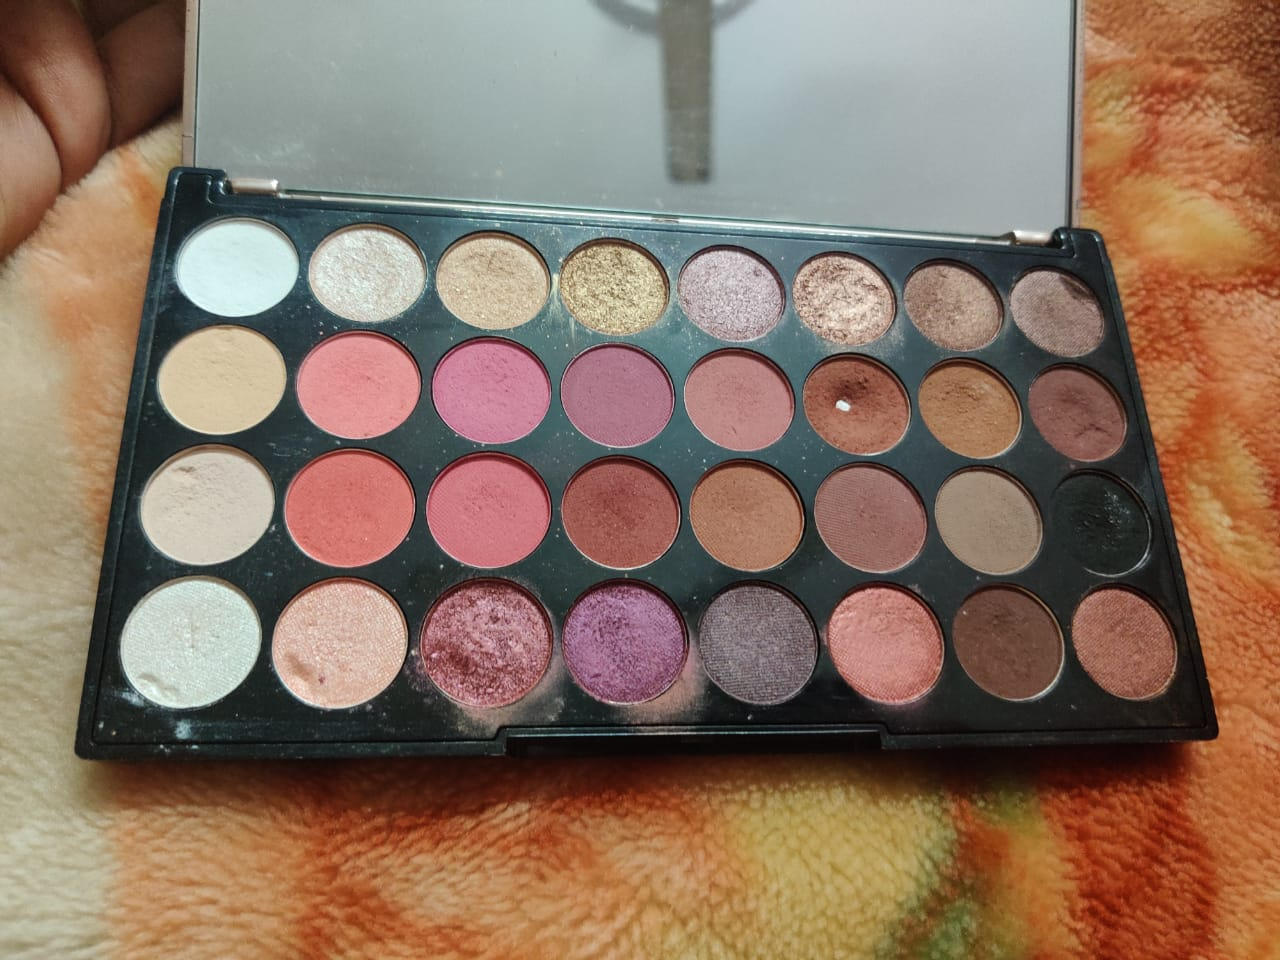 Makeup Revolution Ultra 32 Eyeshadow Palette-Amazing combination of matte and shimmery eye shadow!-By poonam_kakkar-2